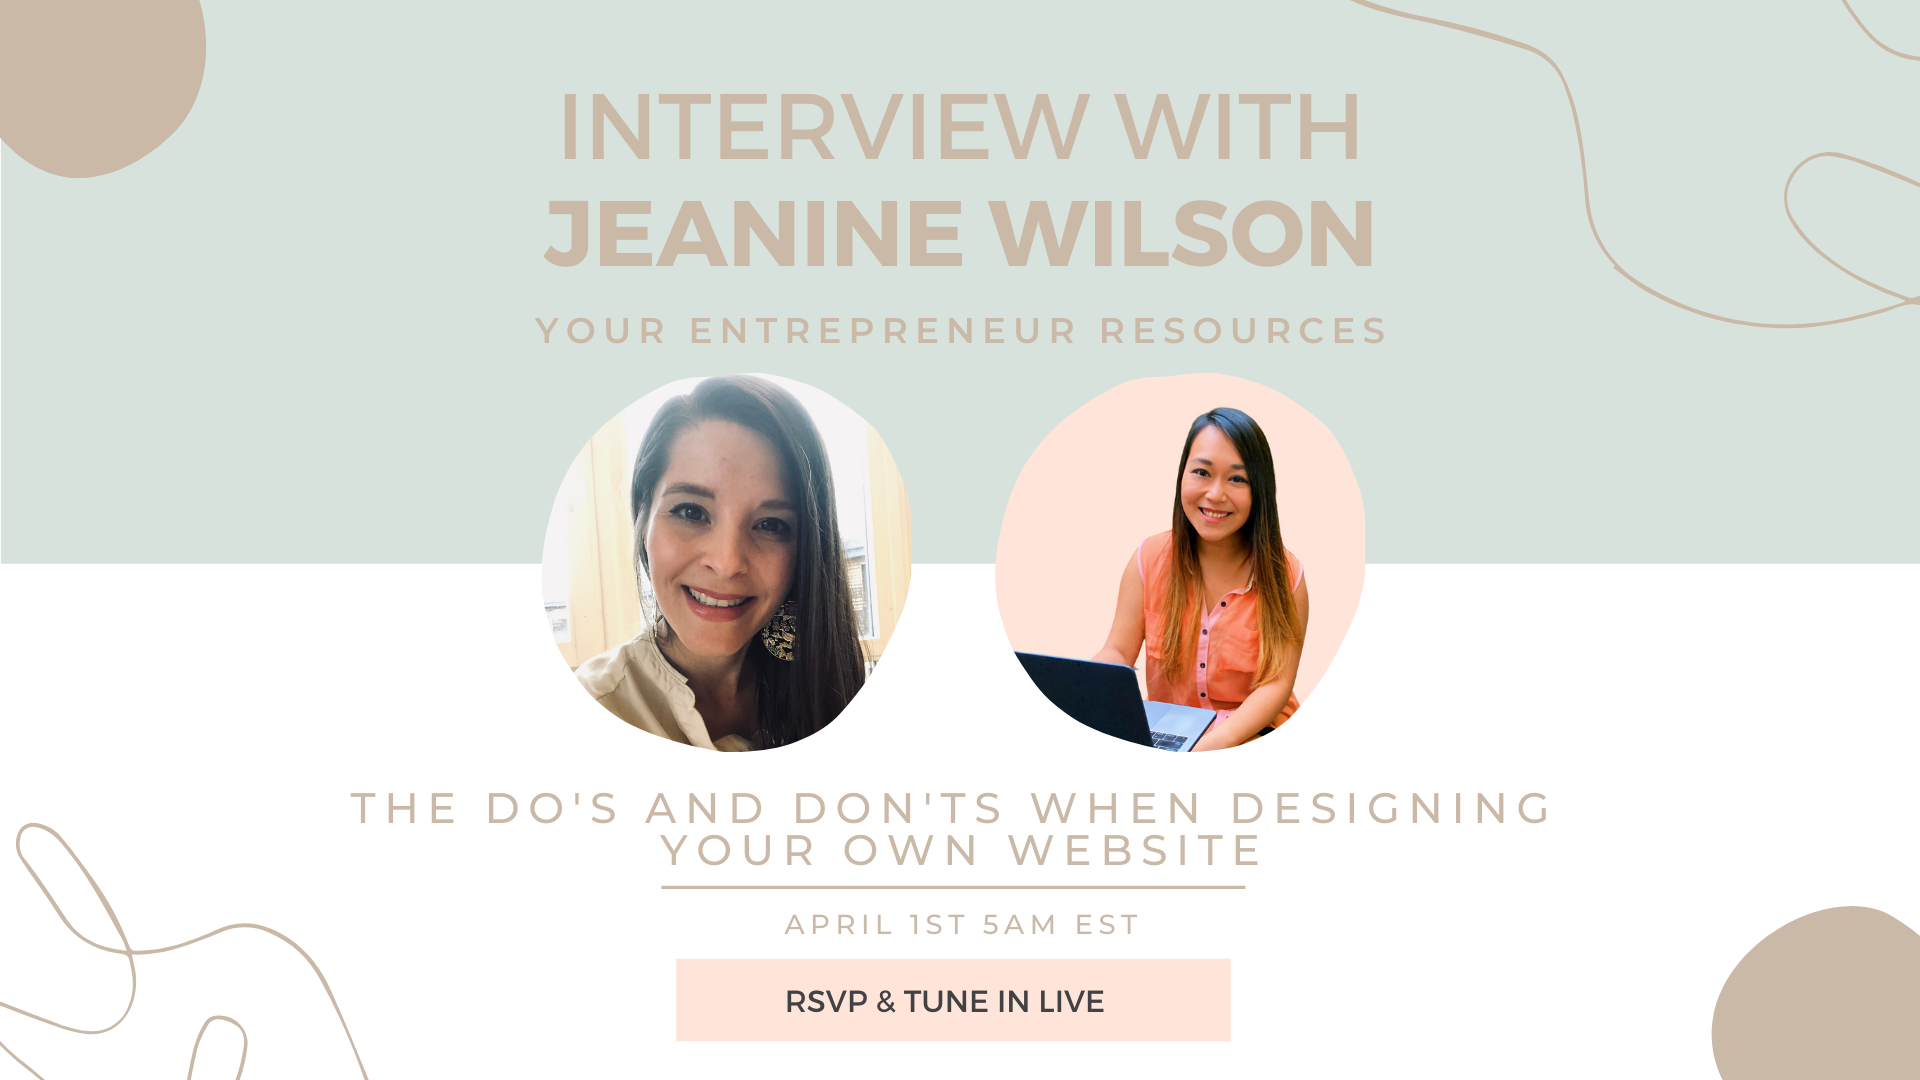 The do's and don'ts when designing your own website with Jeanine Wilson